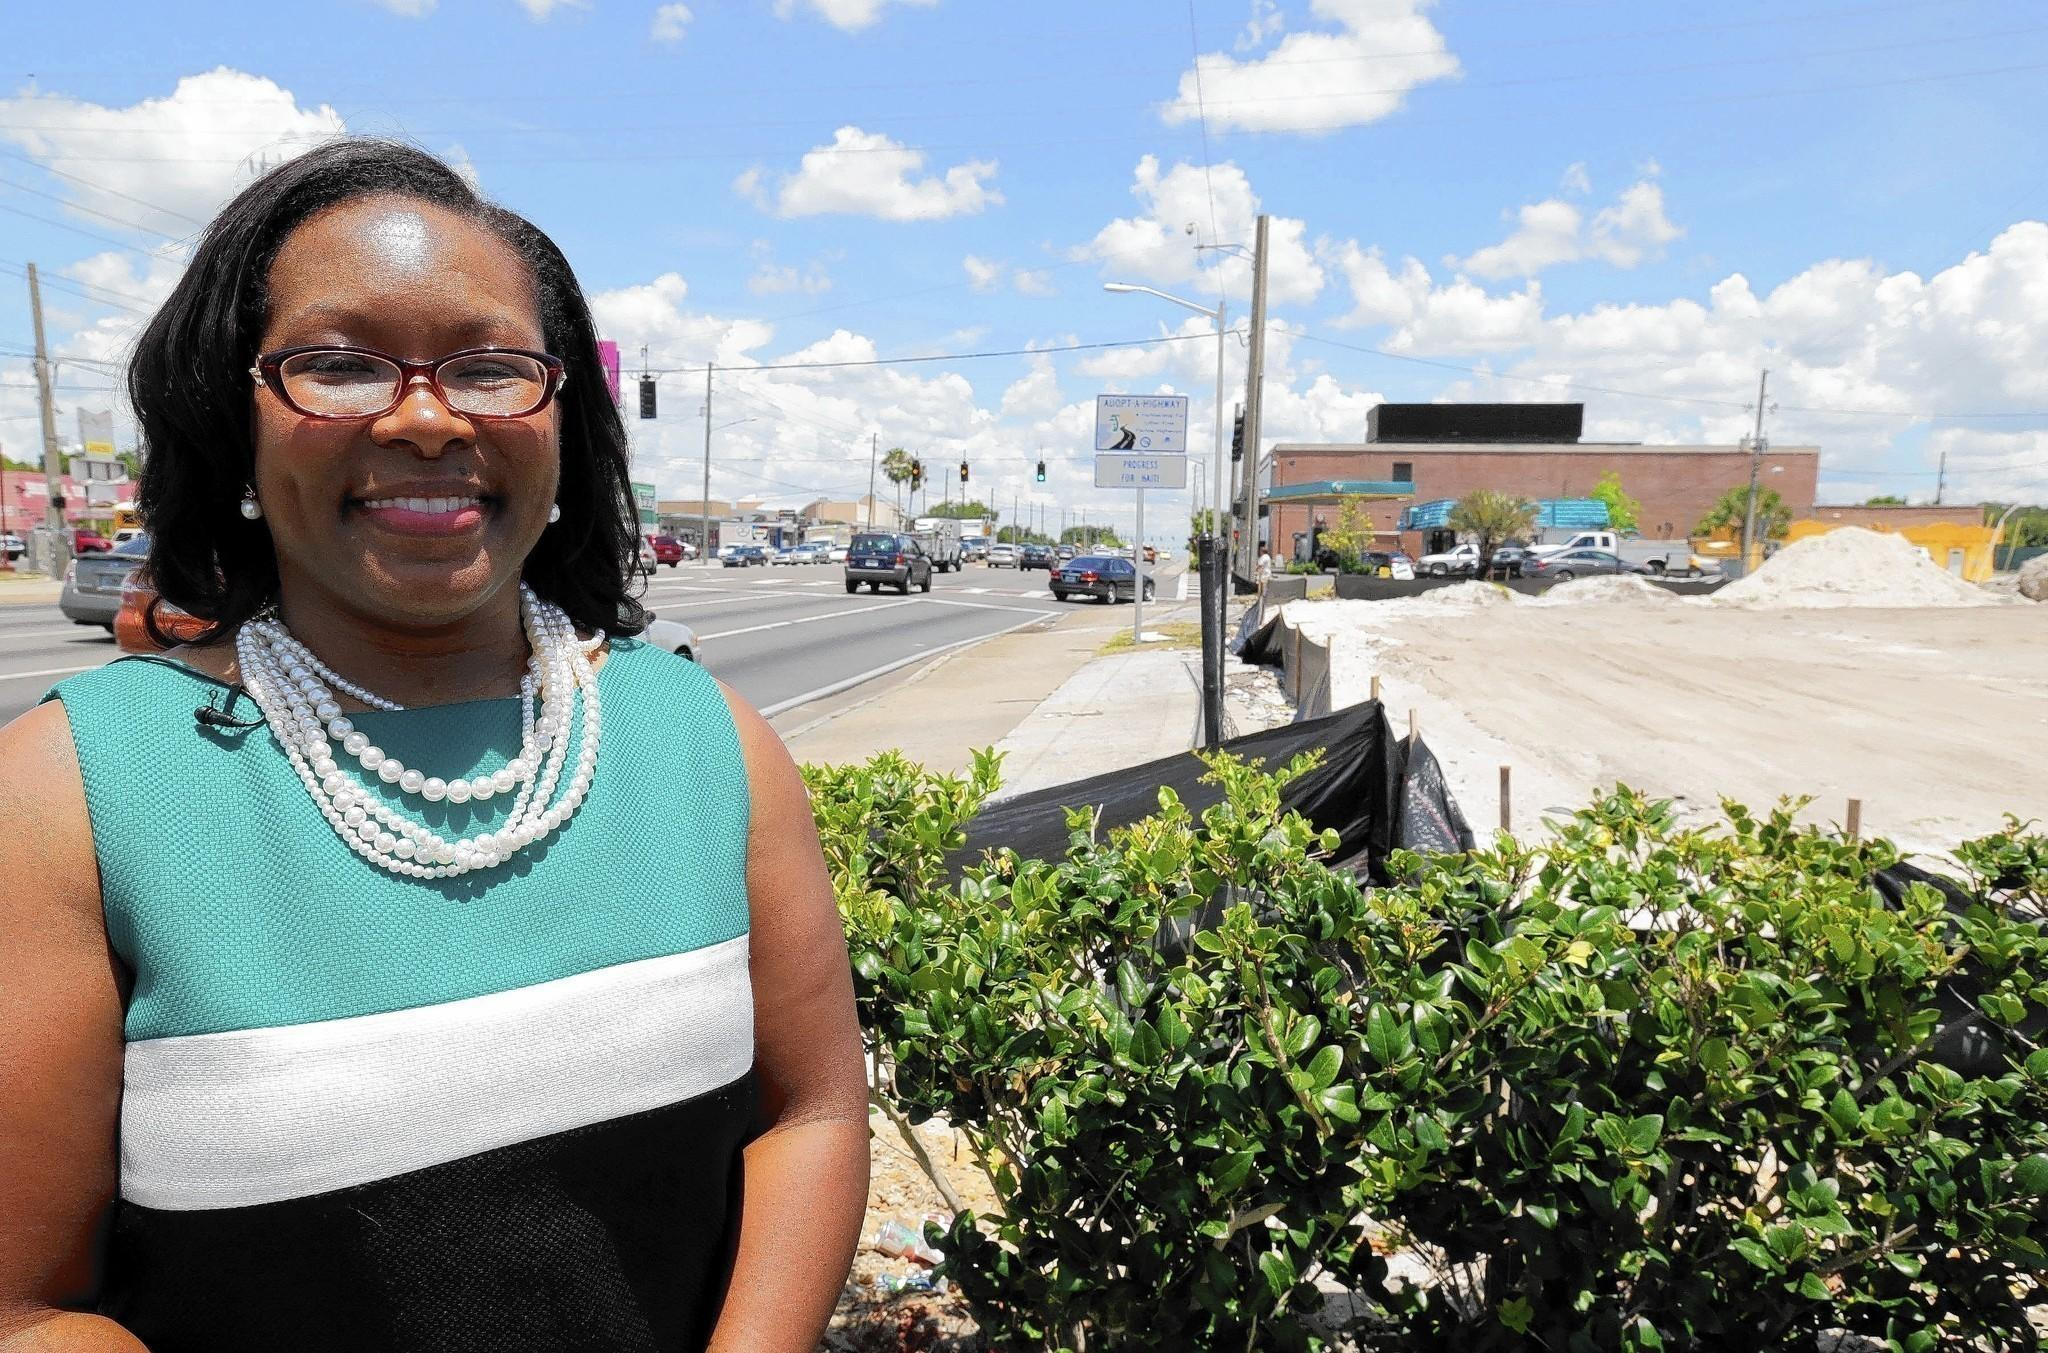 Commissioner Tiffany Moore Russell explains some of the challenges in Pine Hills and its signature intersection at Silver Star Road.